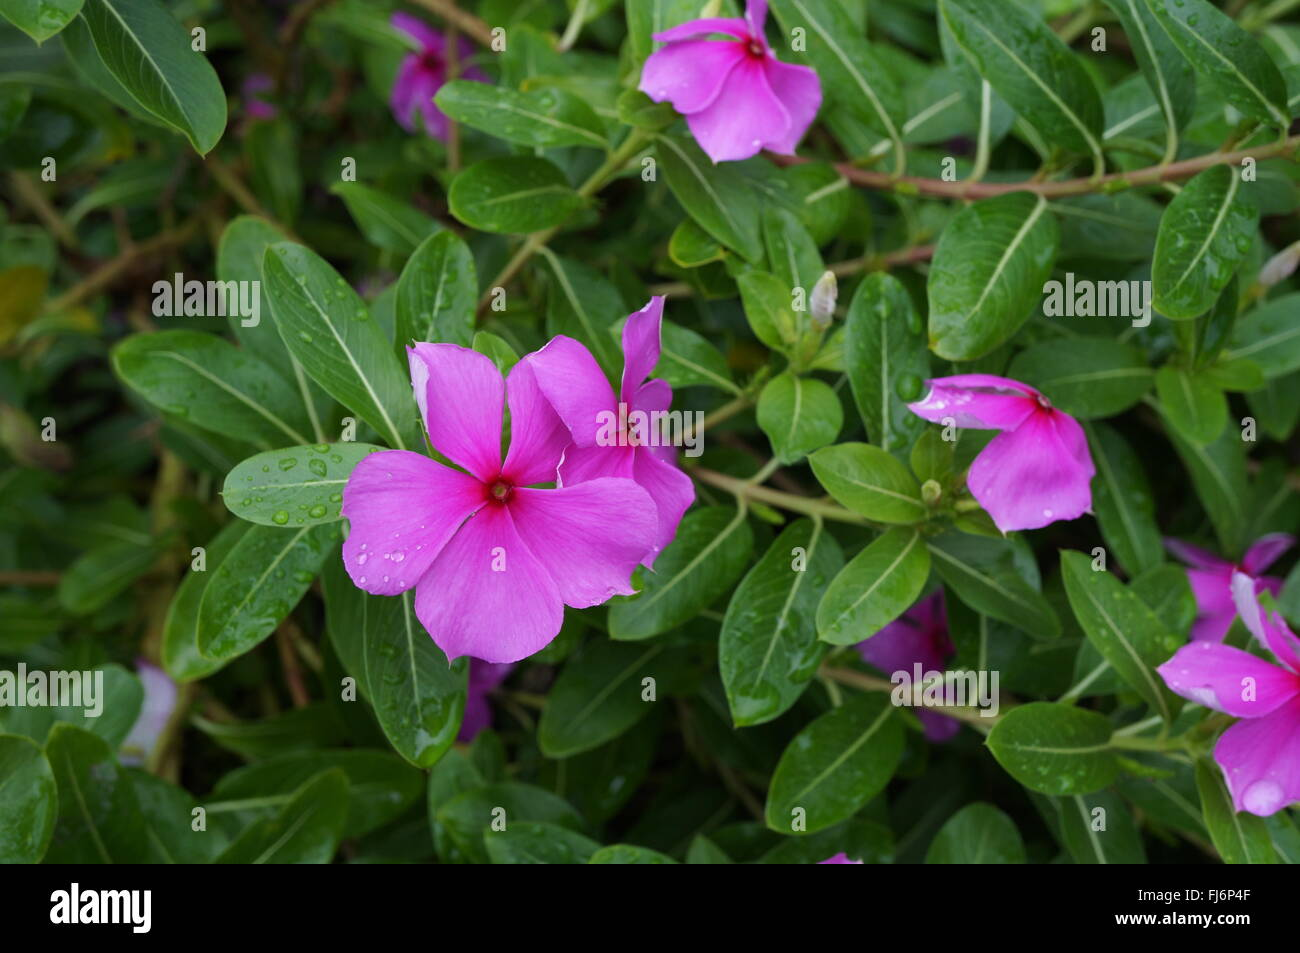 Flowers that bloom in shade - Pink Impatiens Flowers In Bloom In The Shade